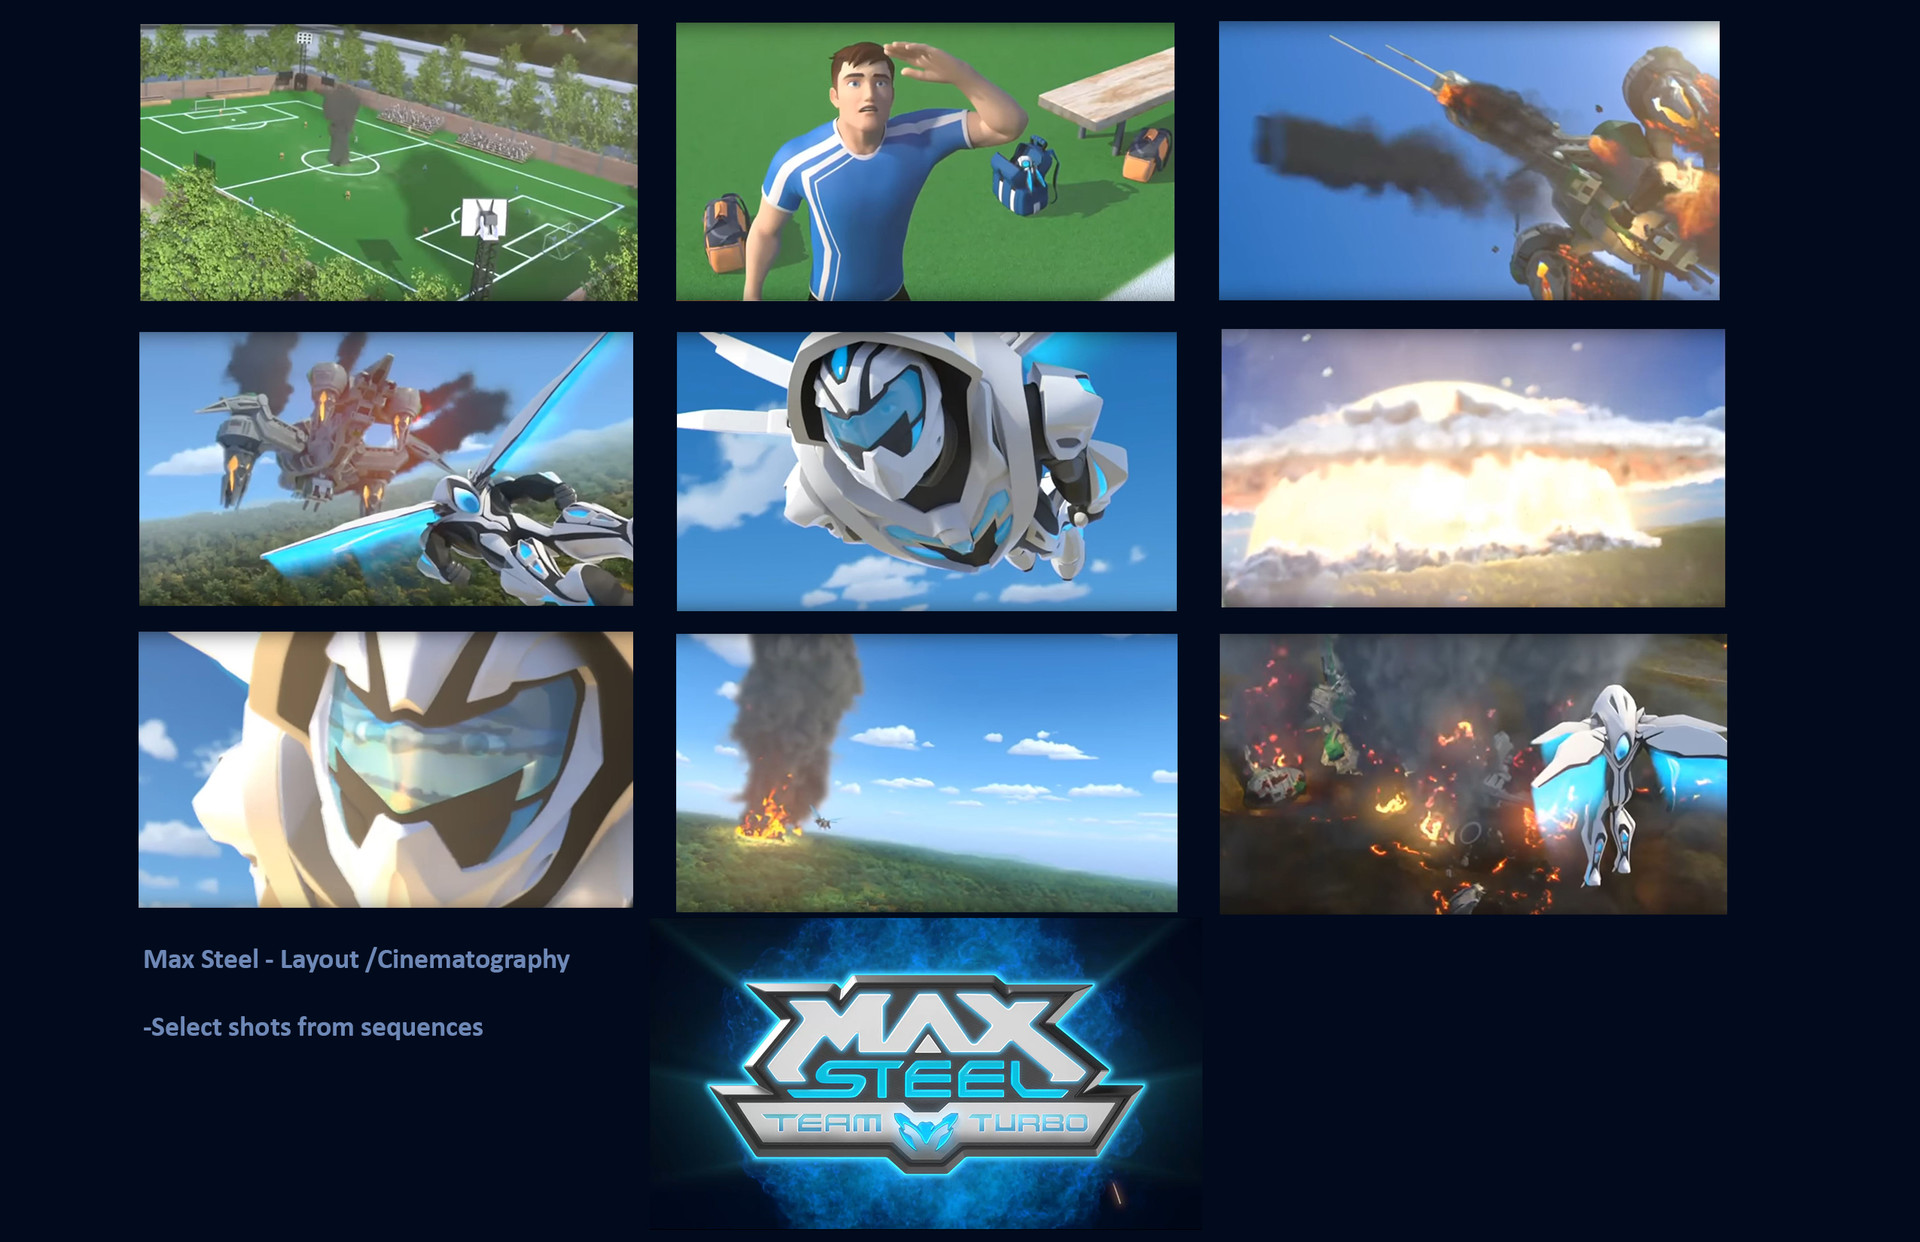 max steel full movie in english online